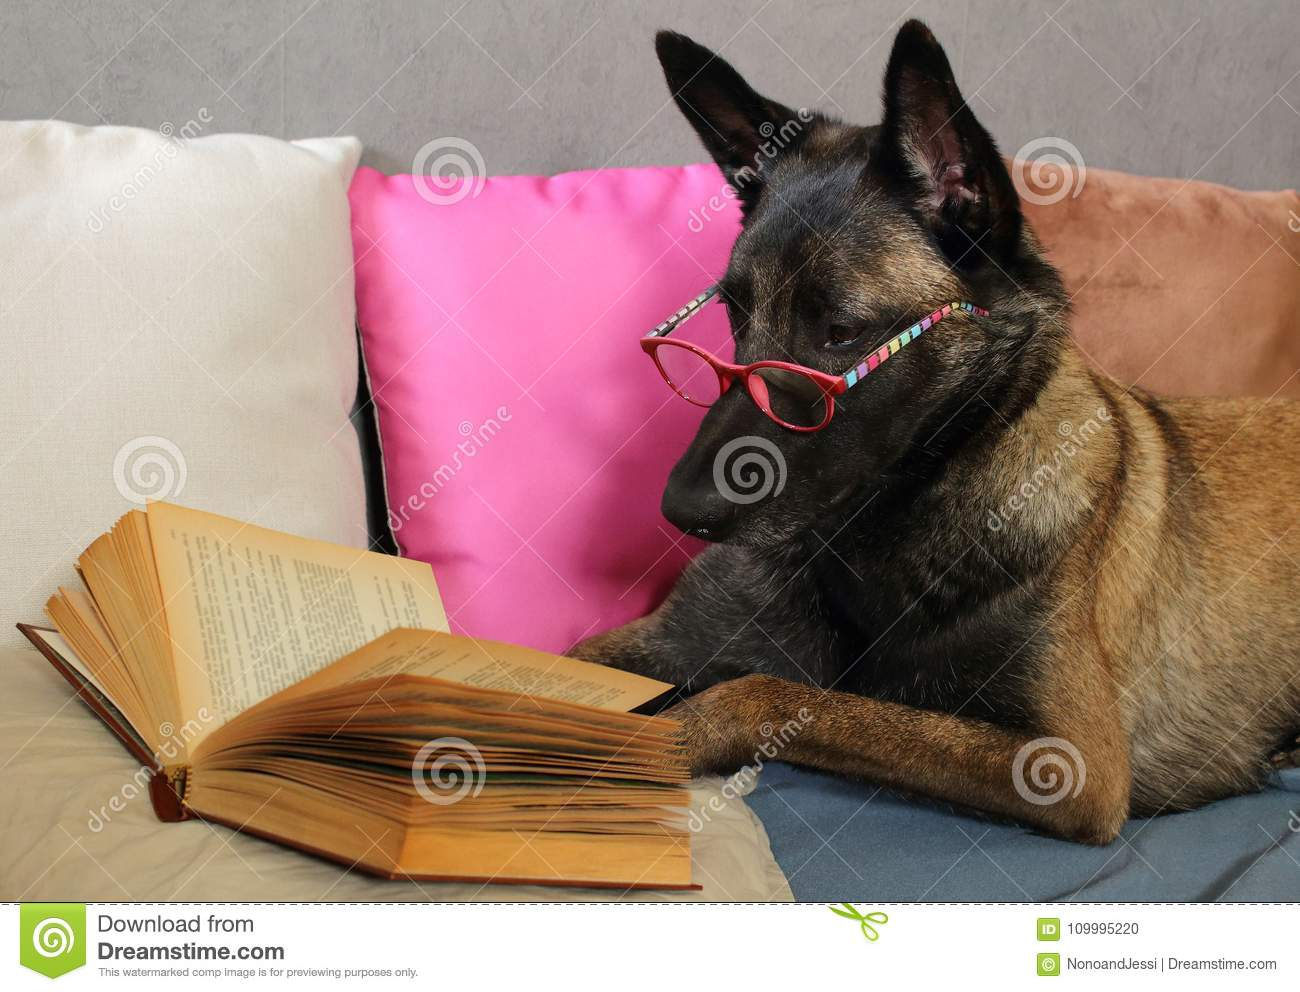 Malinois Belgian Sheepdog reads a book with a pair of glasses on the muzzle lying on cushions in cocooning mode